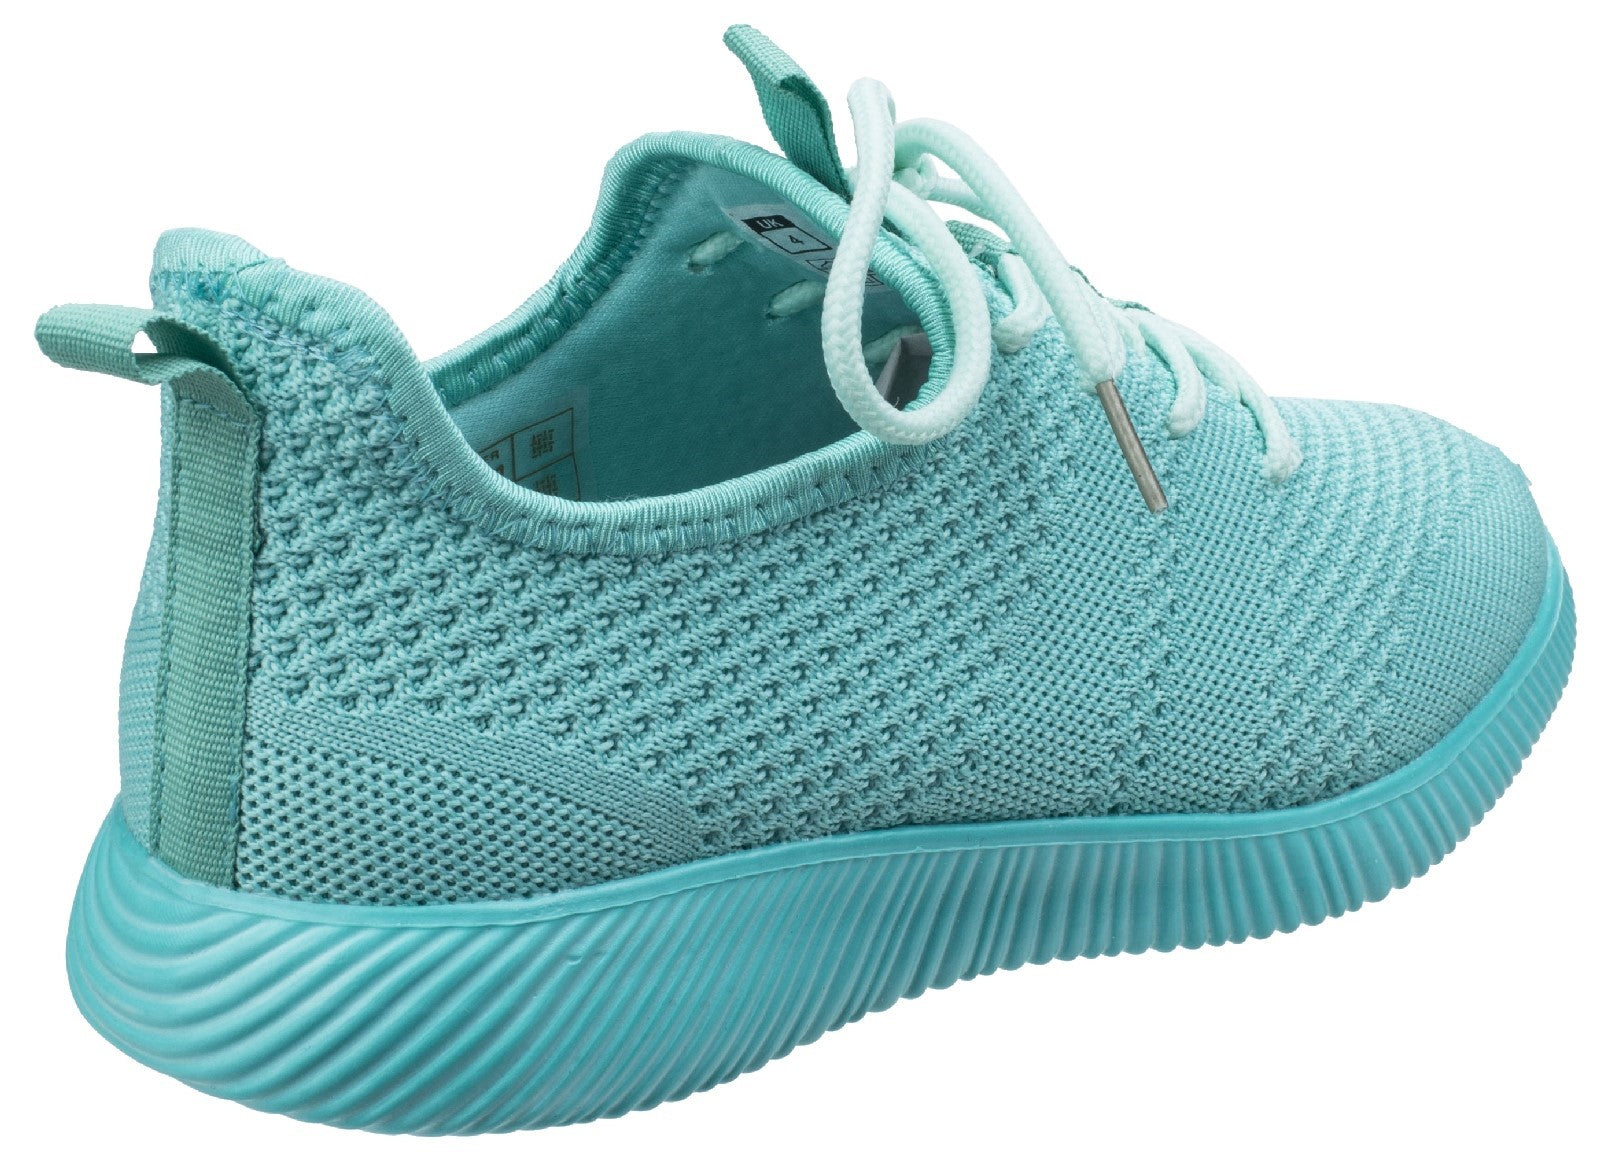 Divaz Women's Heidi Knit Trainer Grey 26327-43957